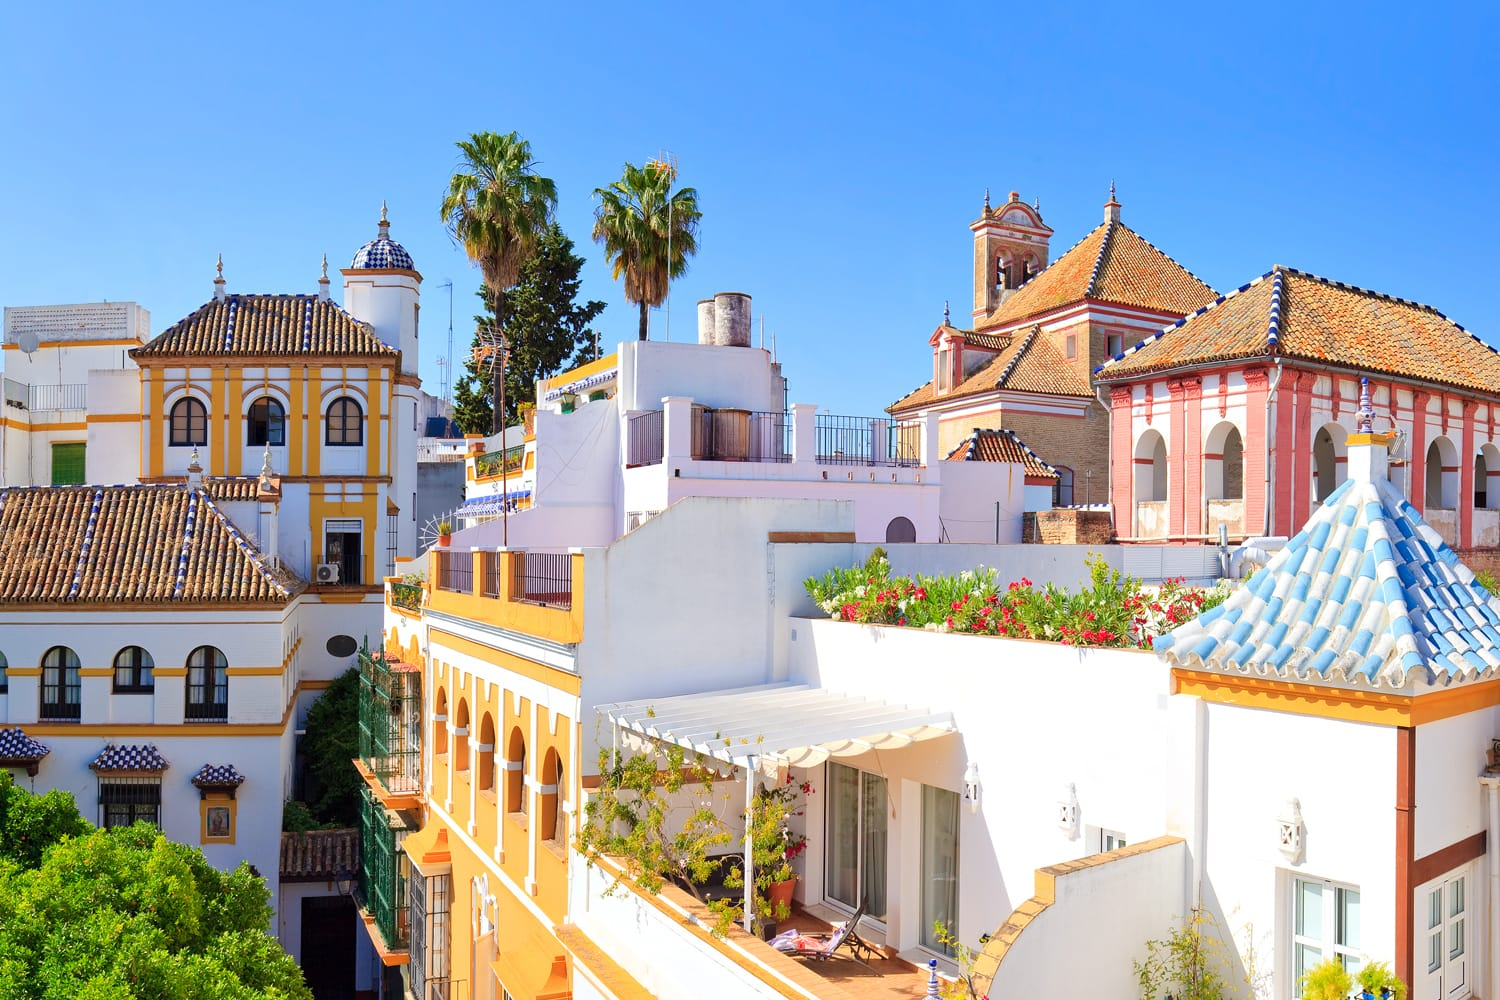 Rooftops of Seville, Spain